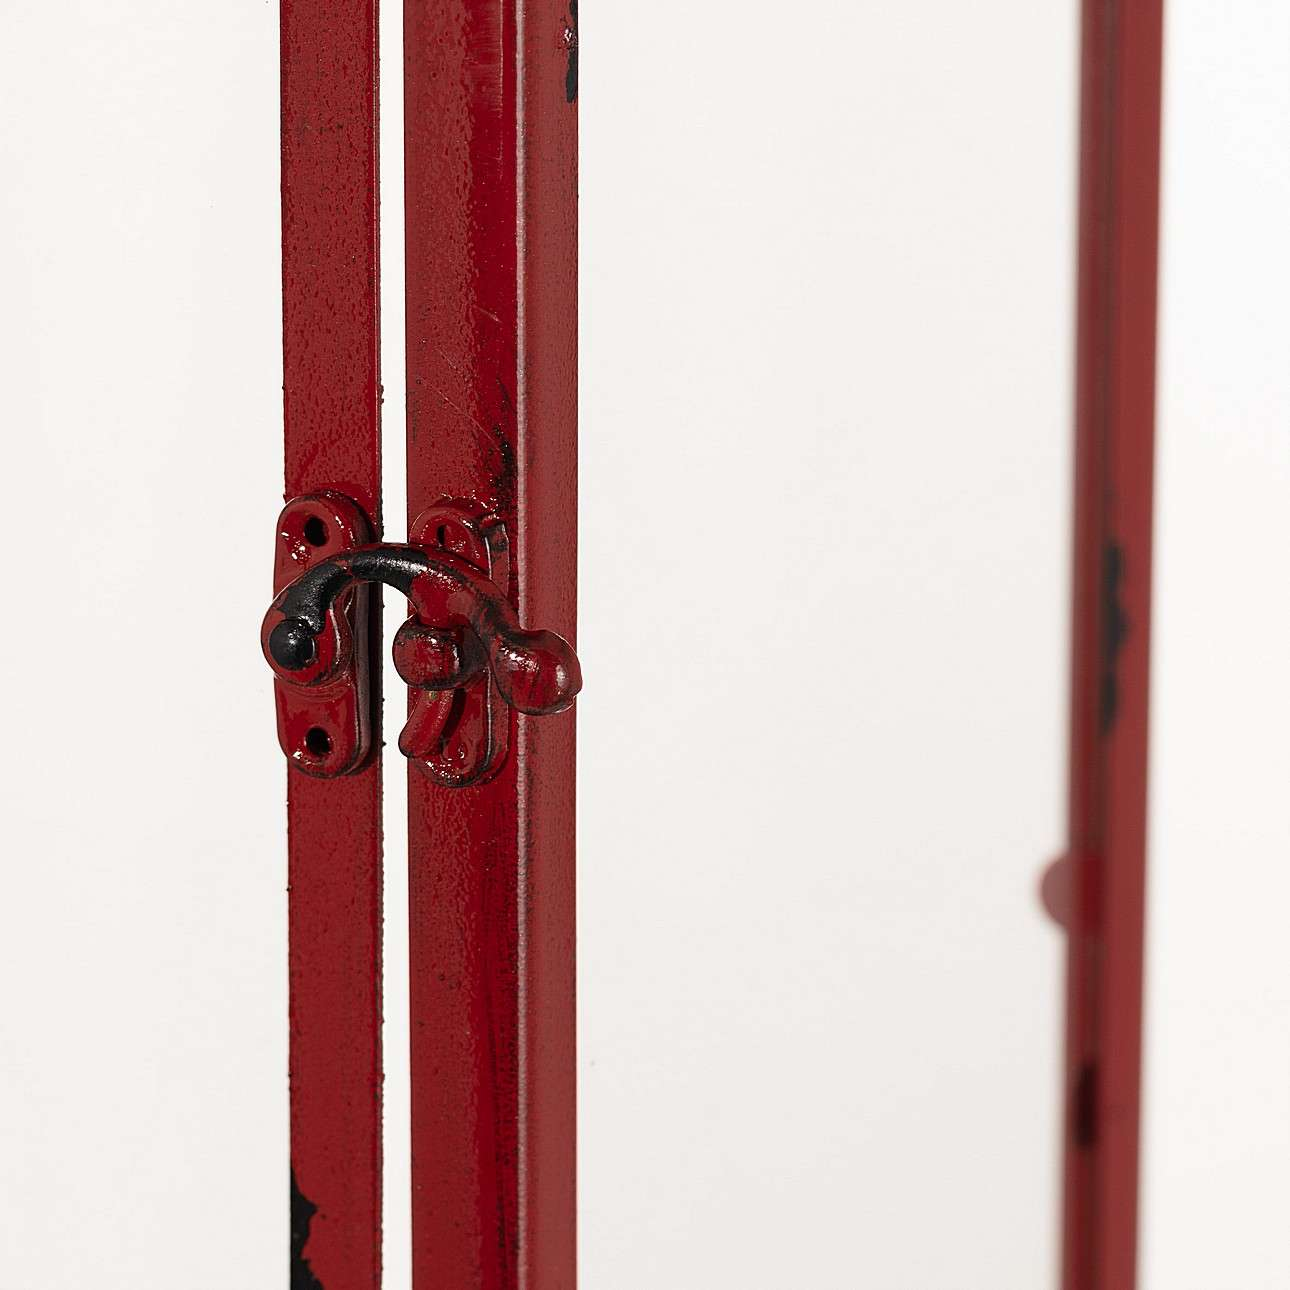 Laterne Colin Red 26x15x48 cm